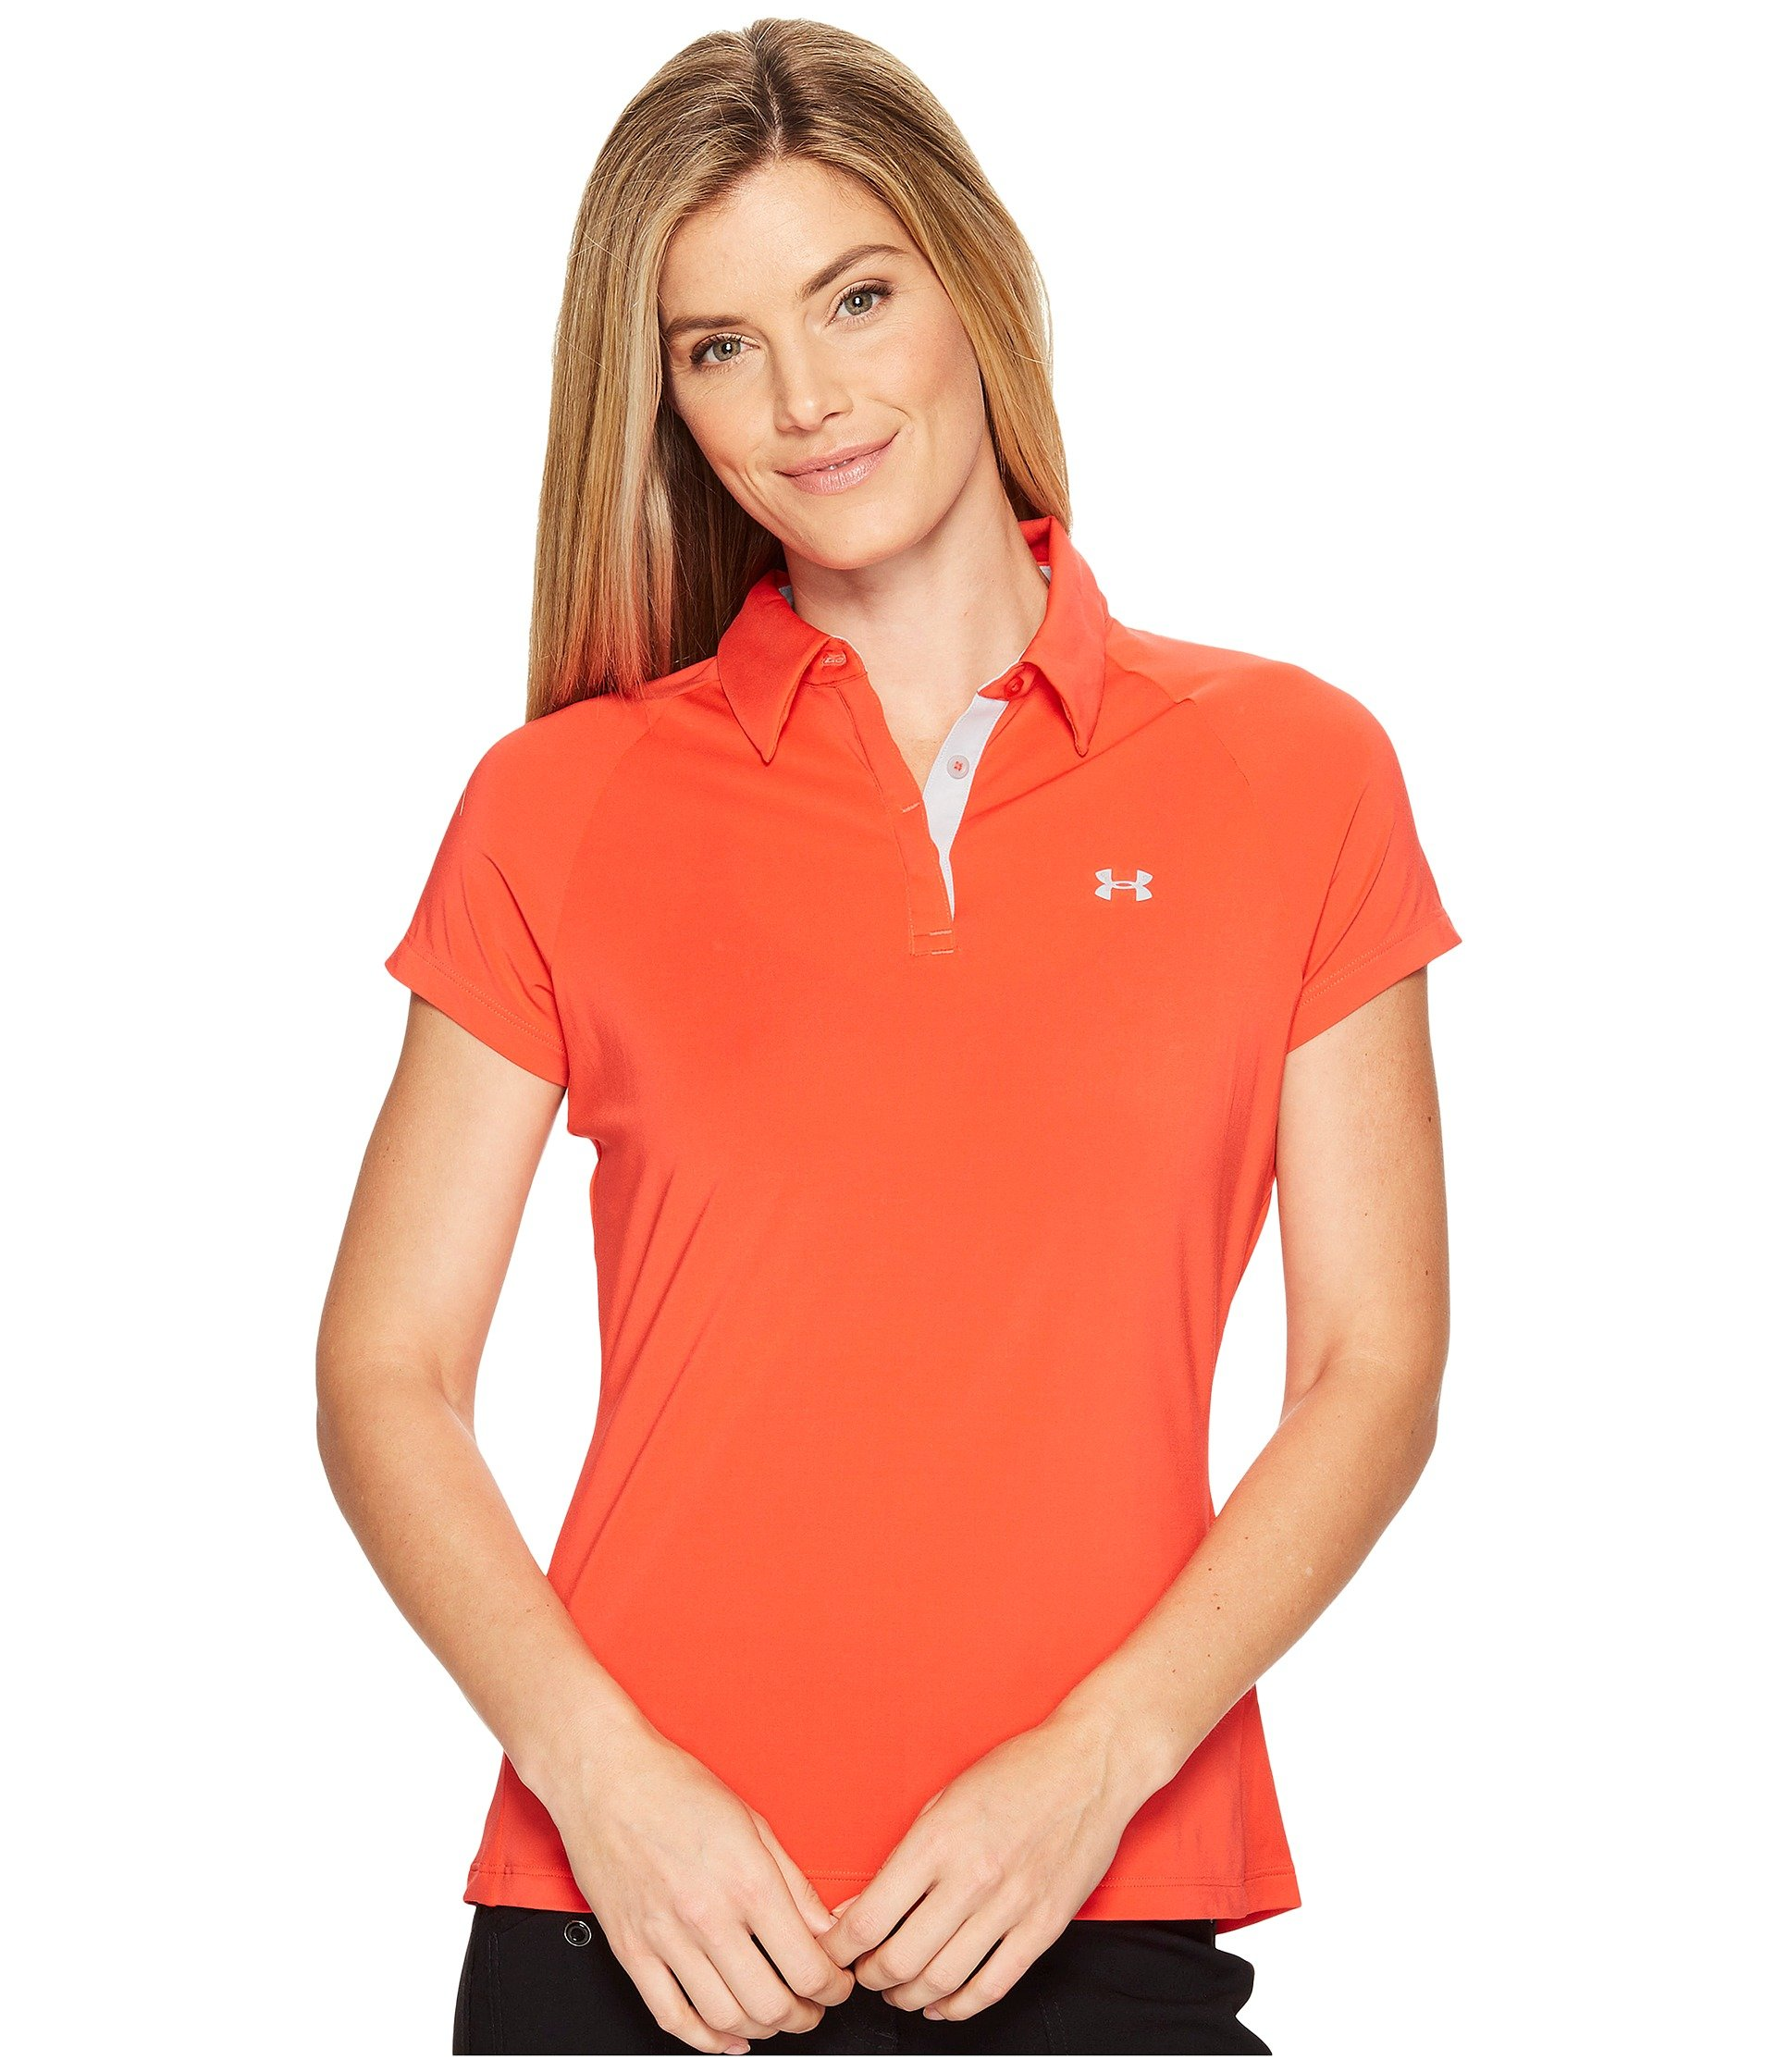 Camiseta Tipo Polo para Mujer Under Armour Golf Zinger UPF Short Sleeve Polo  + Under Armour en VeoyCompro.net